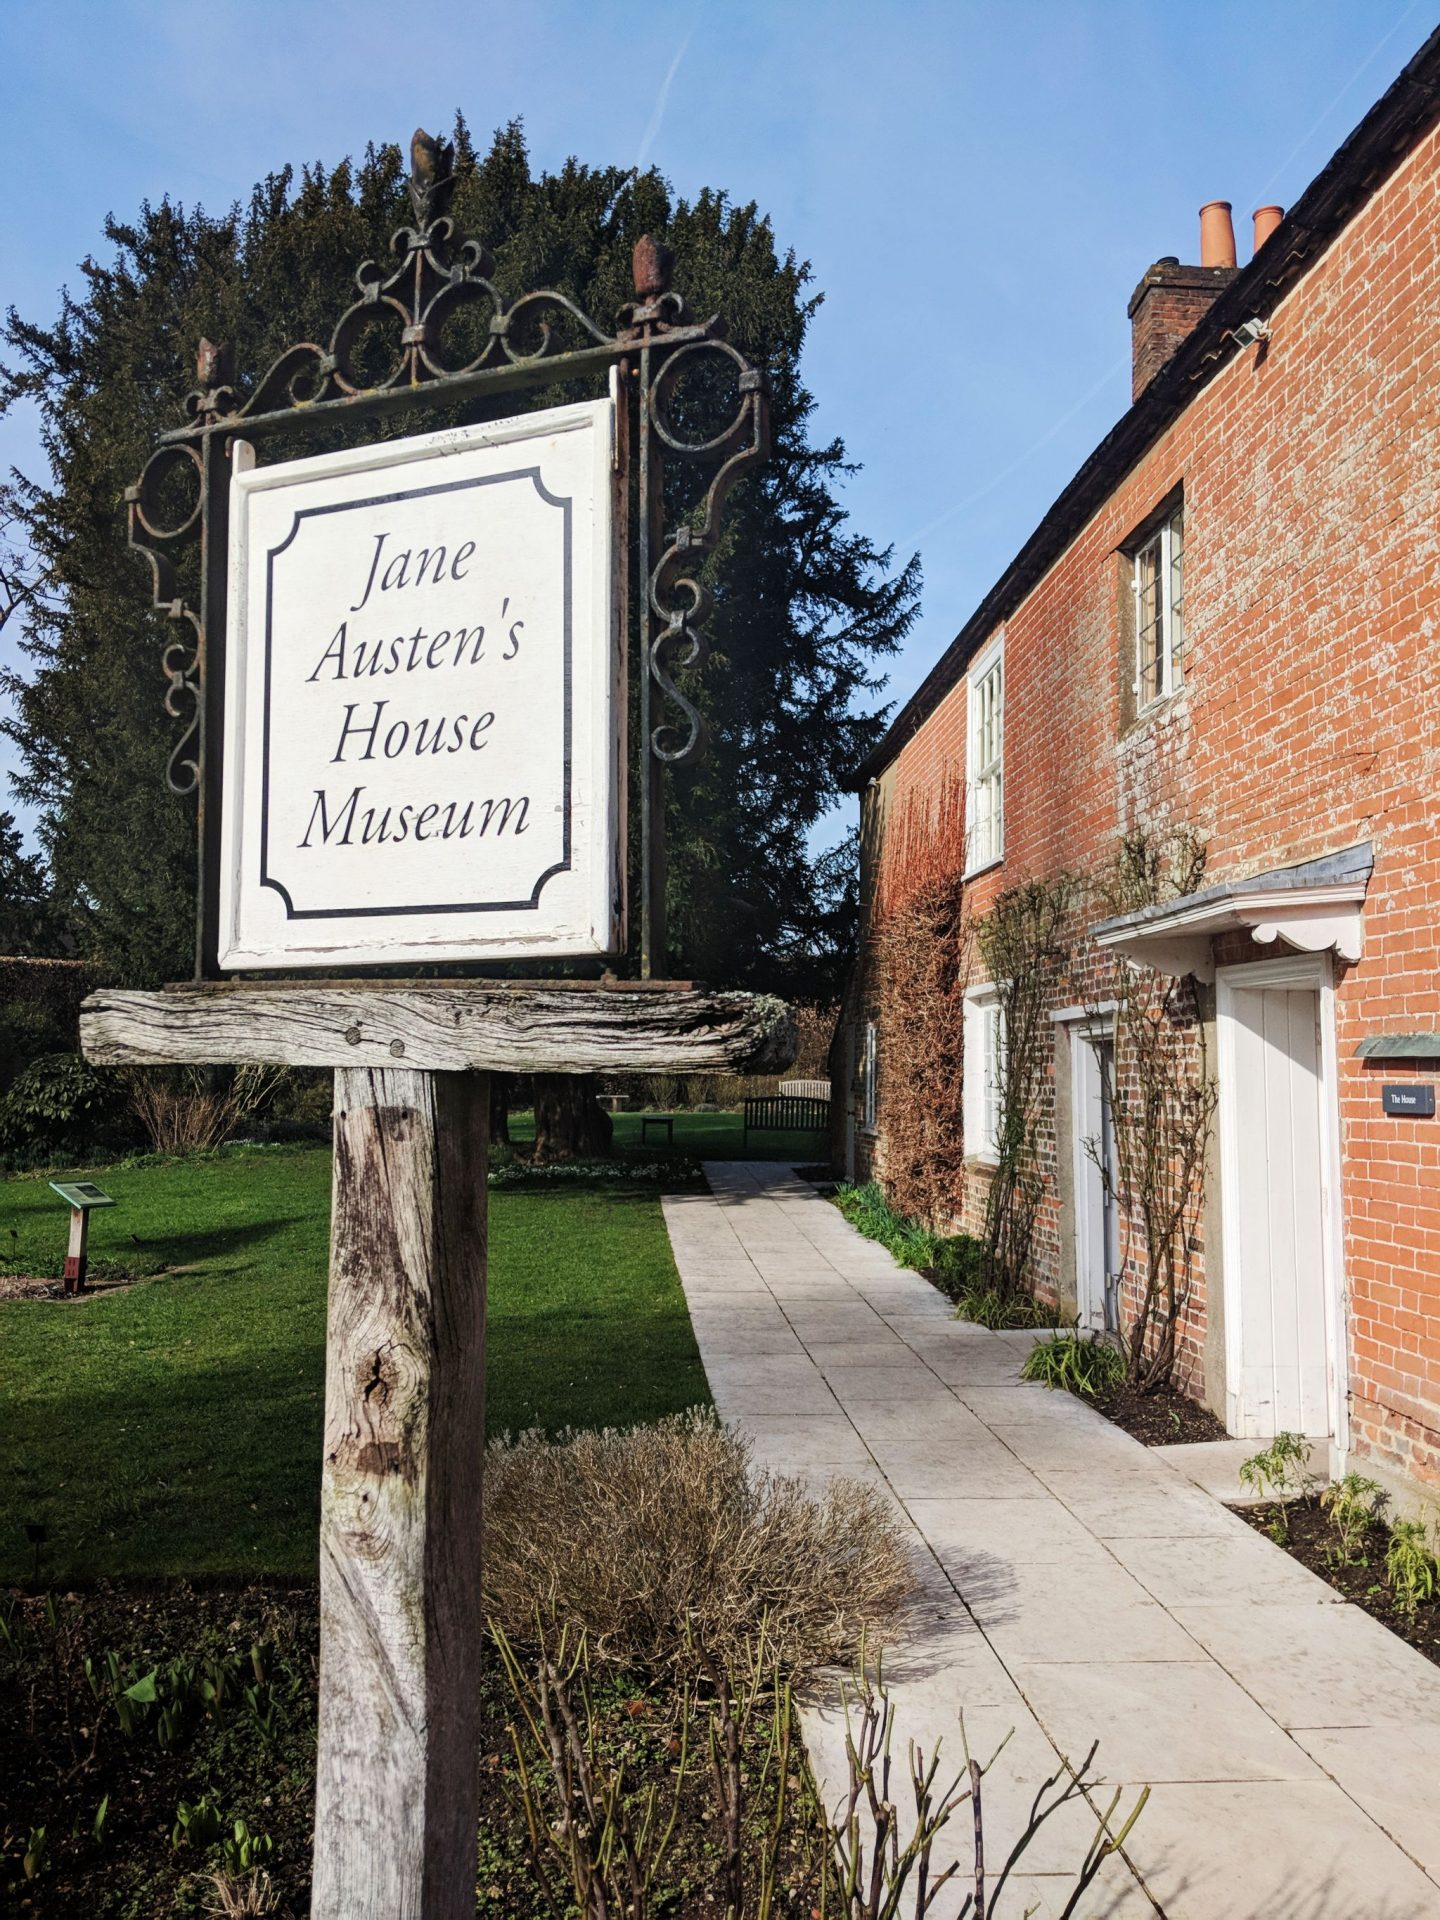 The Jane Austen's House Museum